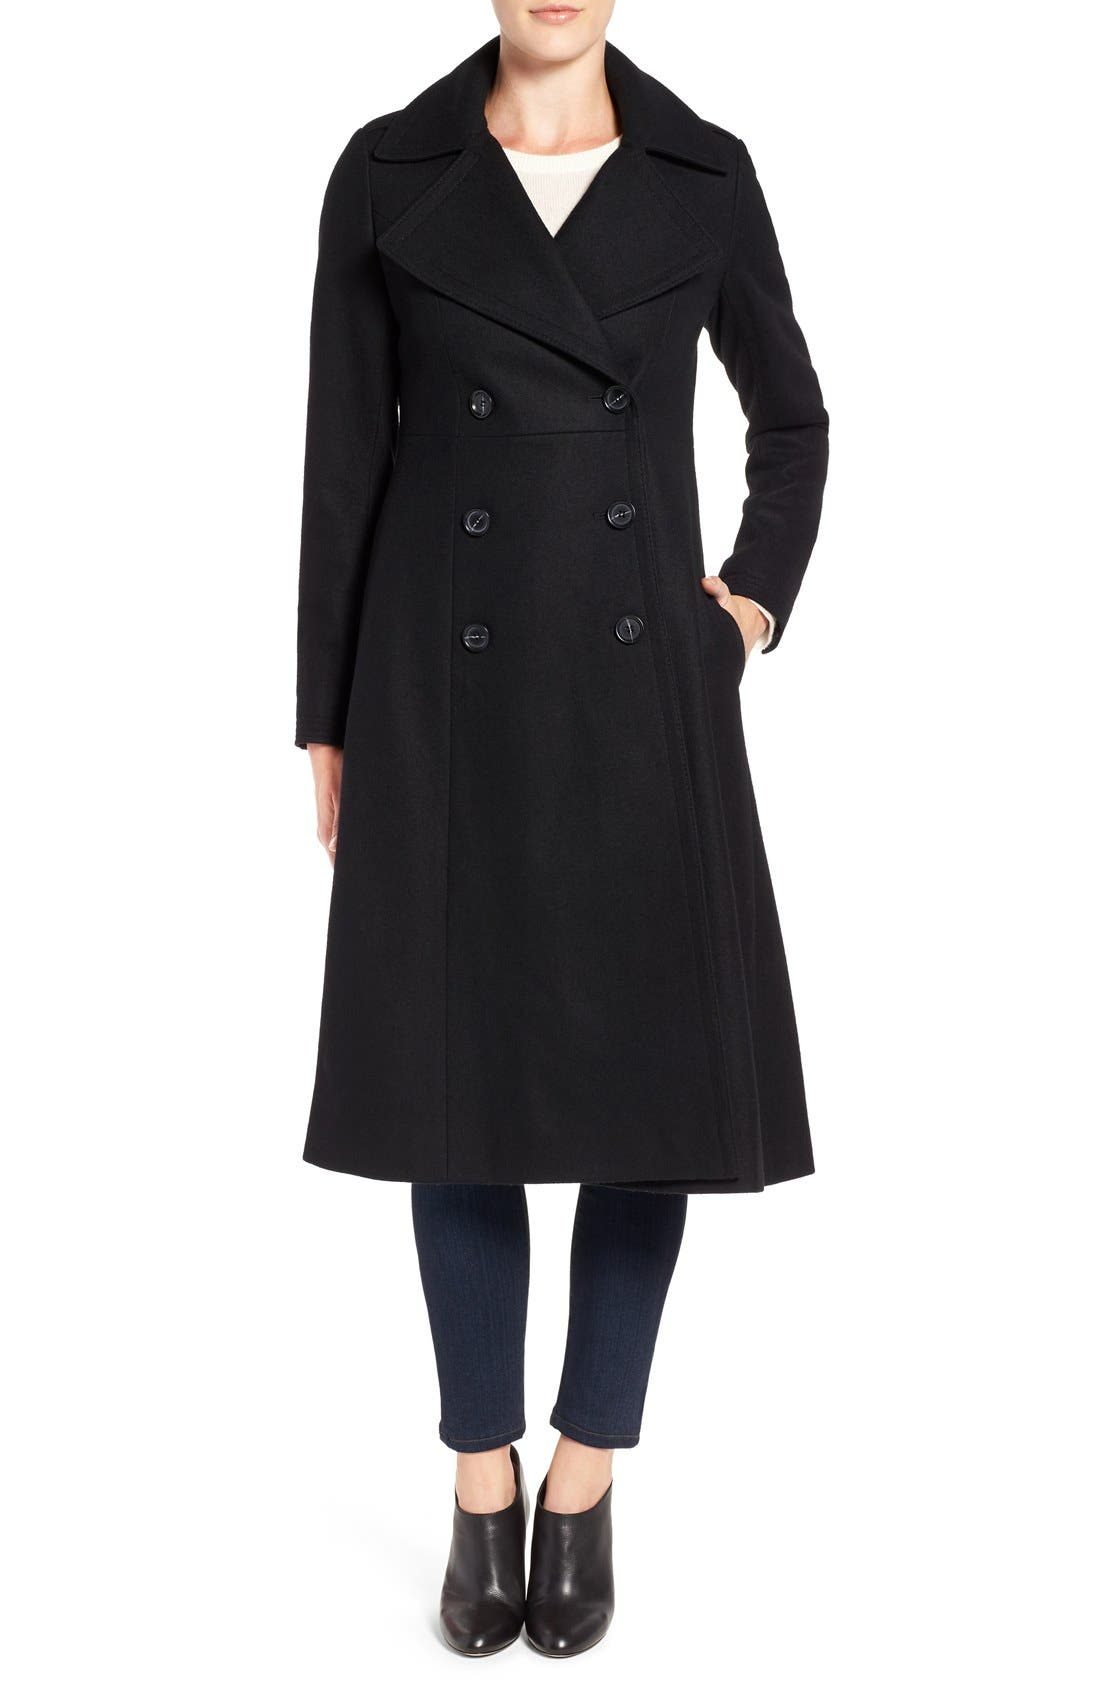 Alternate Image 1 Selected - French Connection Long Wool Blend Coat